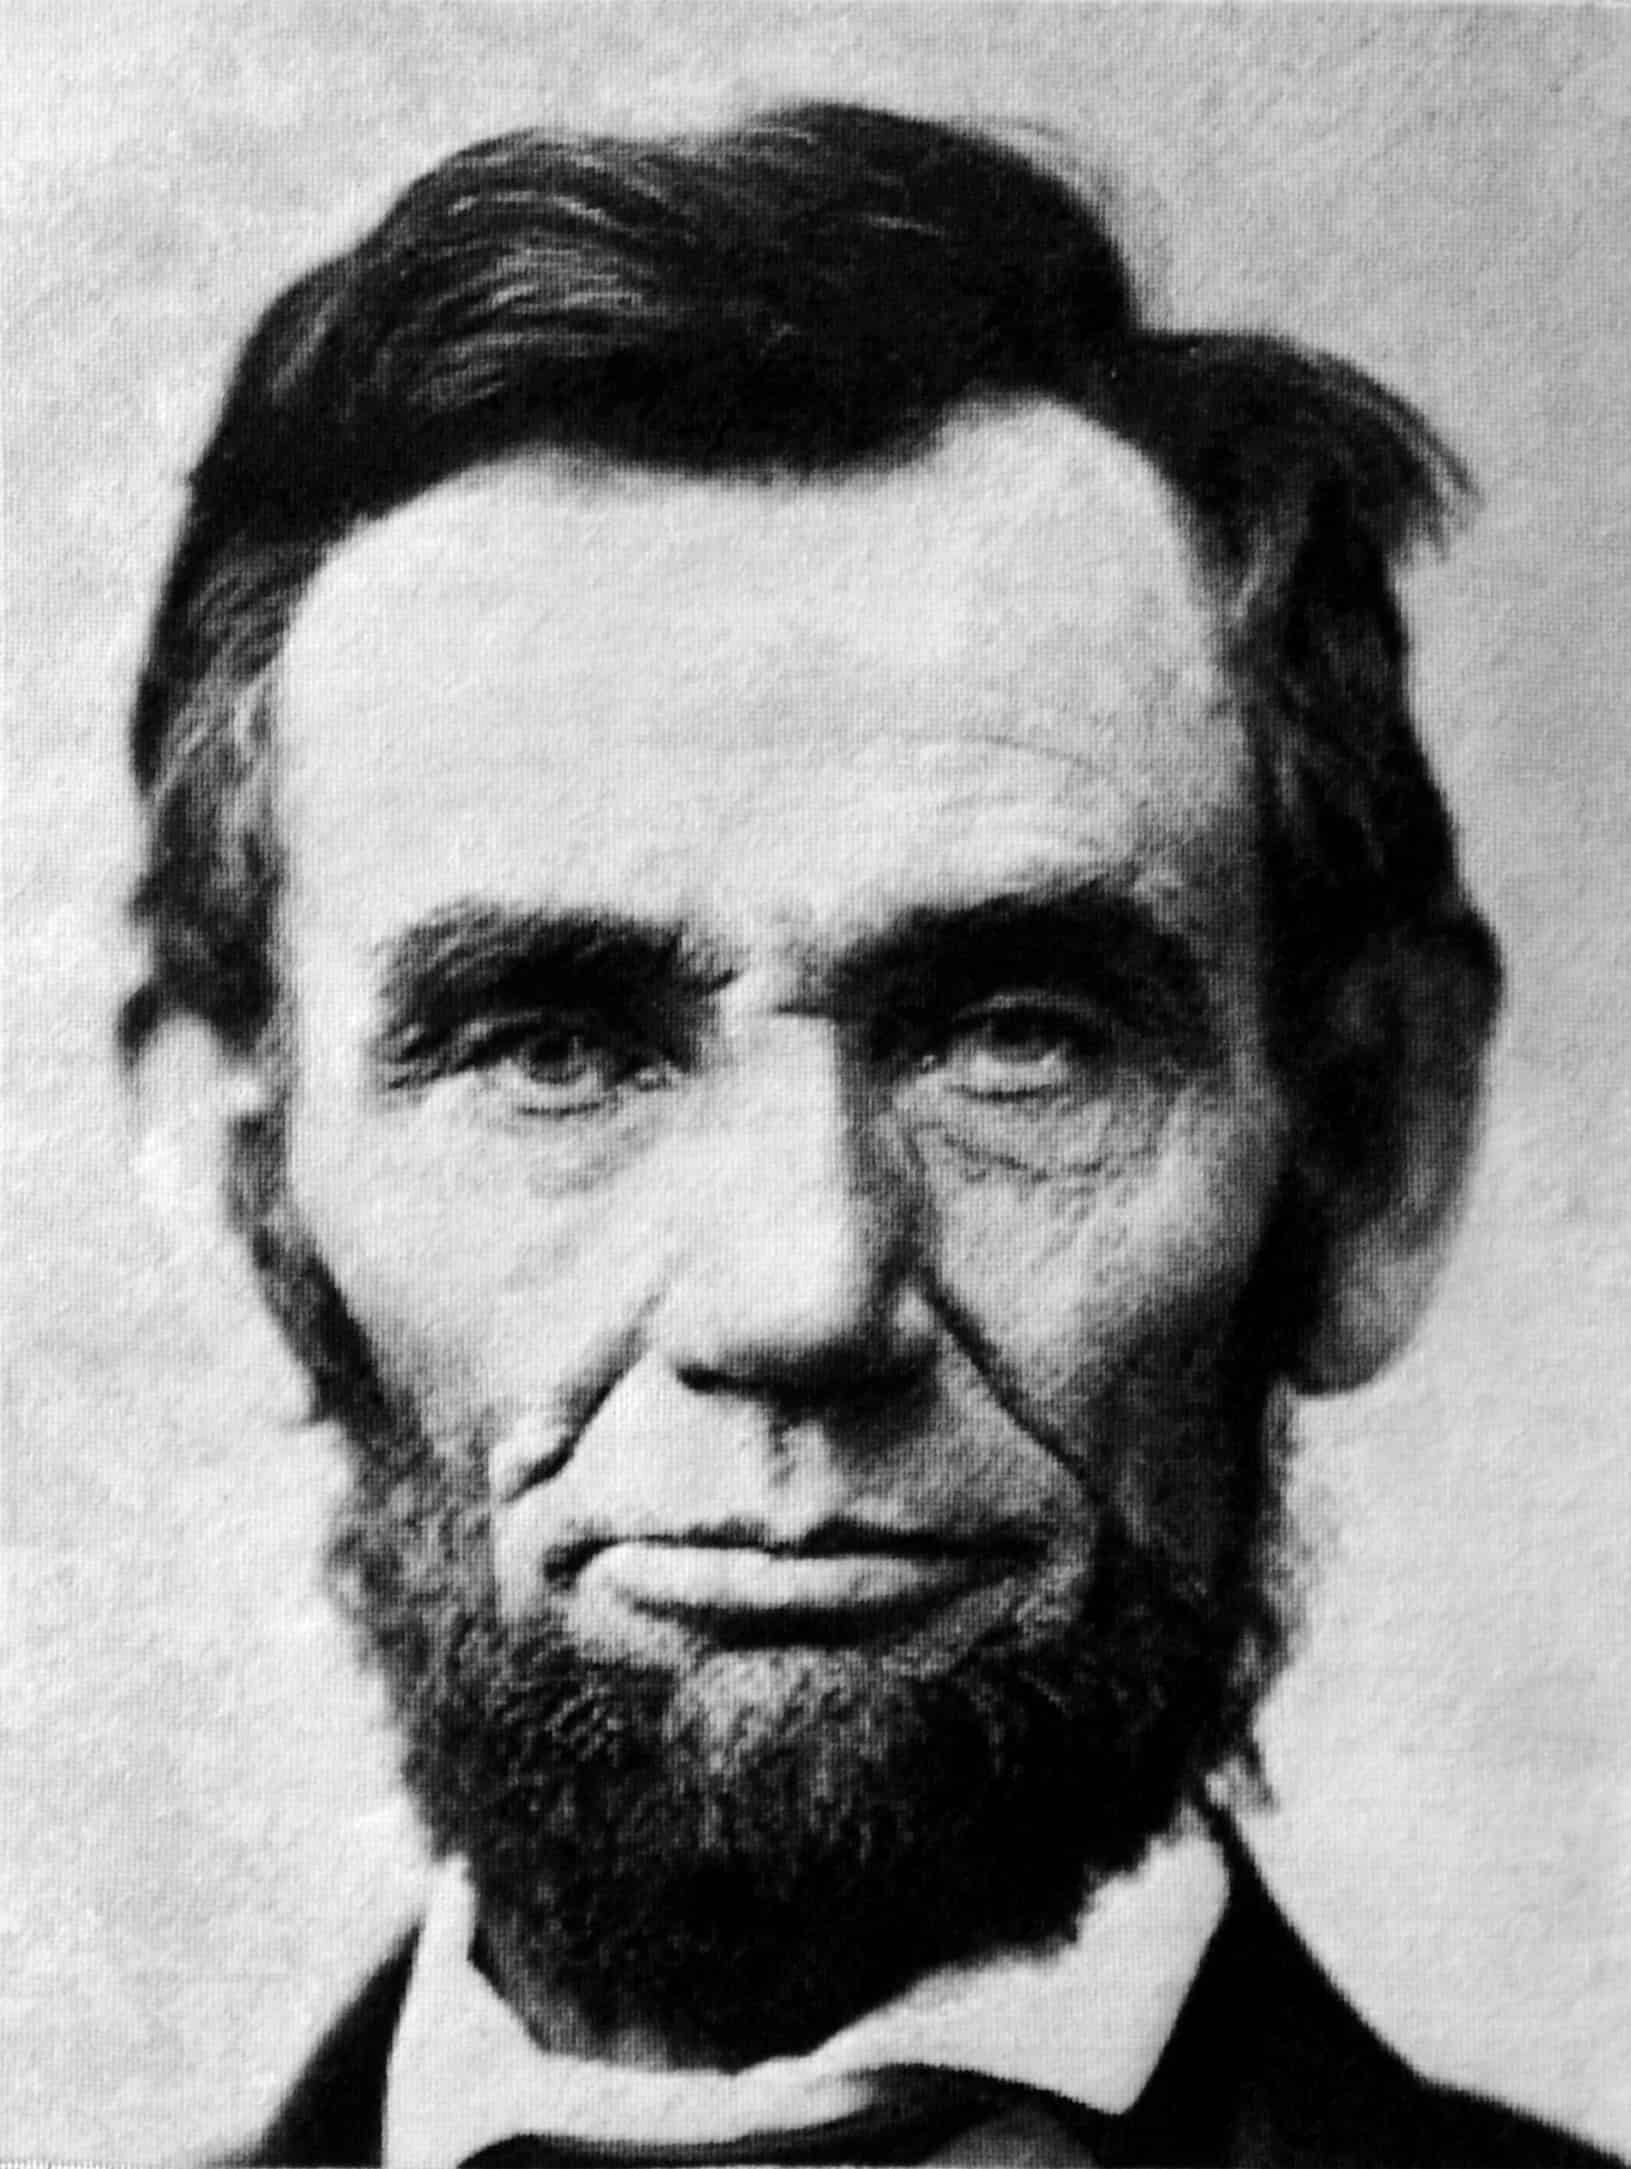 abraham lincoln facts, people facts